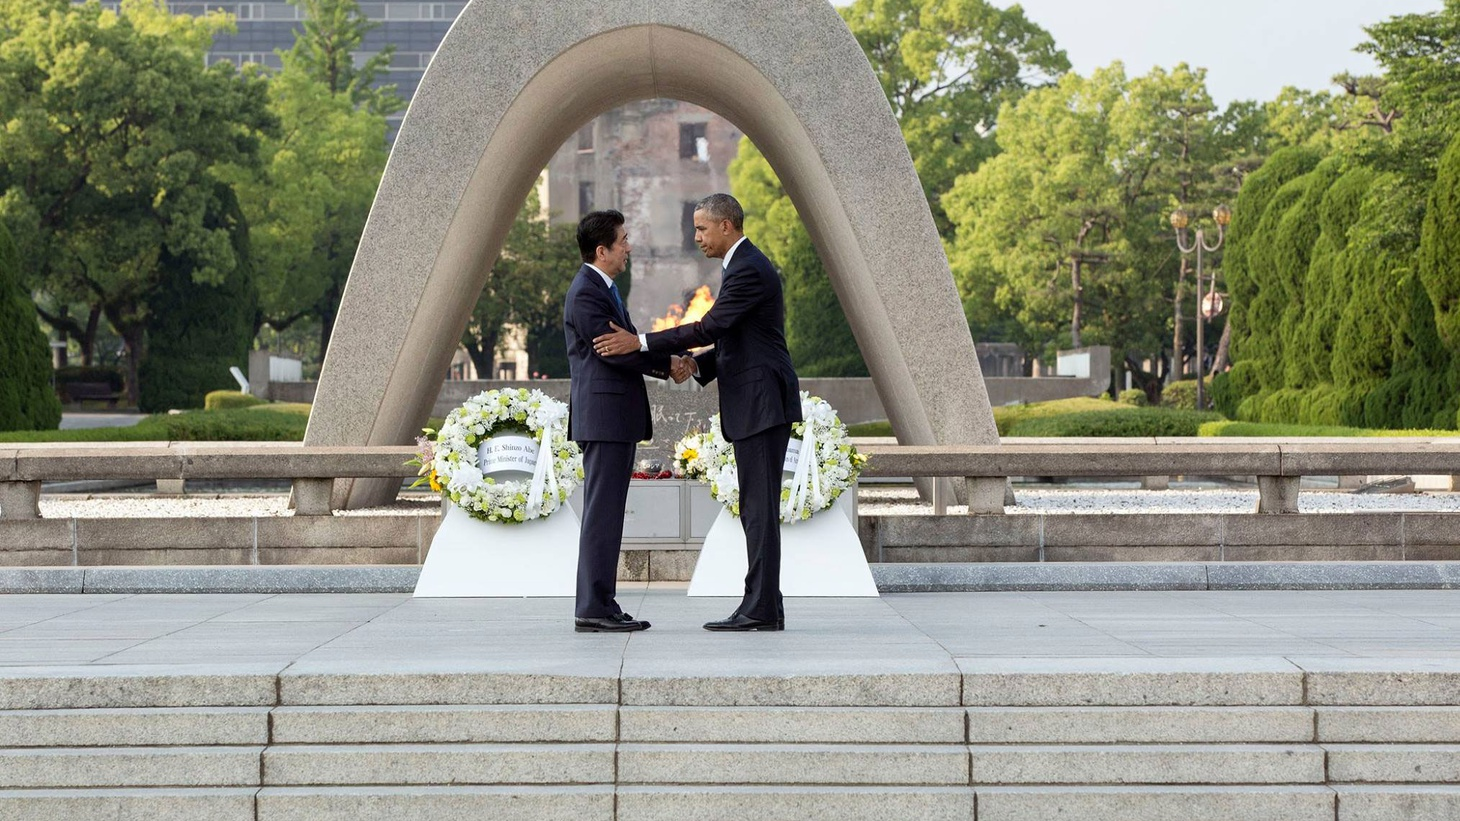 This is the 75th anniversary of Japan's attack on Pearl Harbor, which brought the US into World War II. Later this month, Japanese Prime Minister Shinzo Abe will become the first leader of his country to visit there. Just this past May, Barack Obama was the first US President to visit Hiroshima, the city destroyed by an American nuclear weapon.